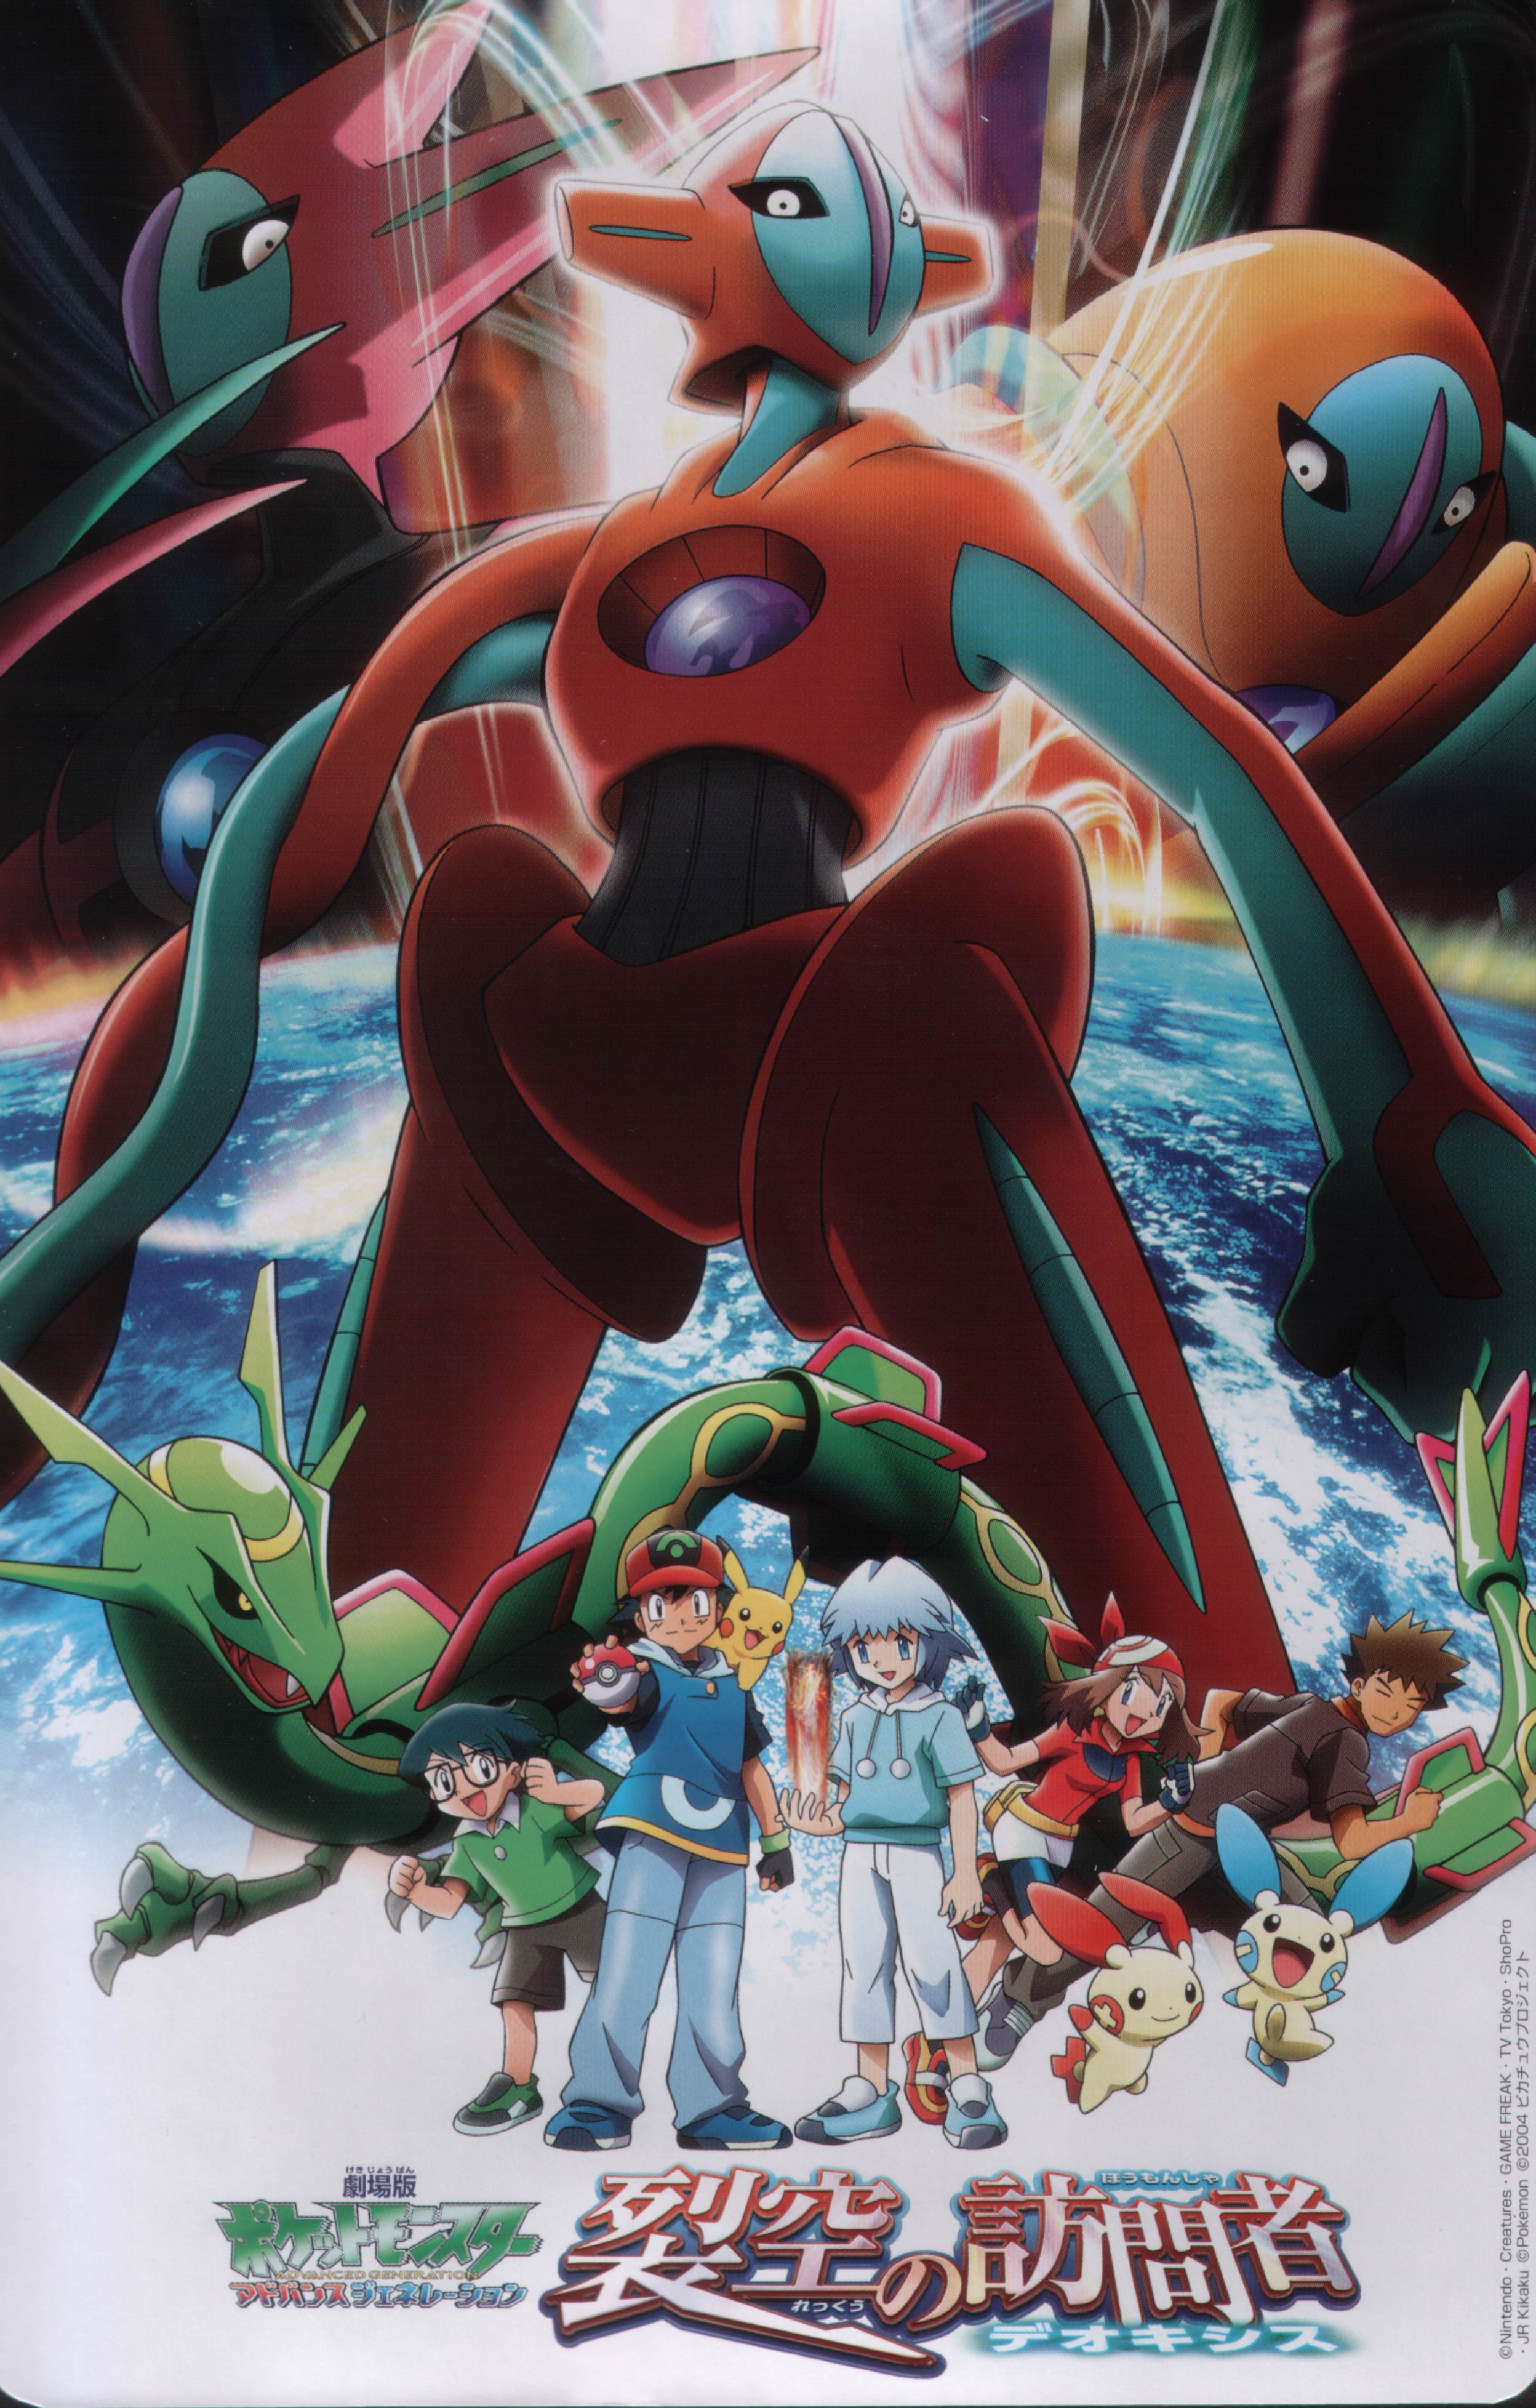 pokemon, movies, Pikachu, Ash Ketchum, Brock, posters, Deoxys